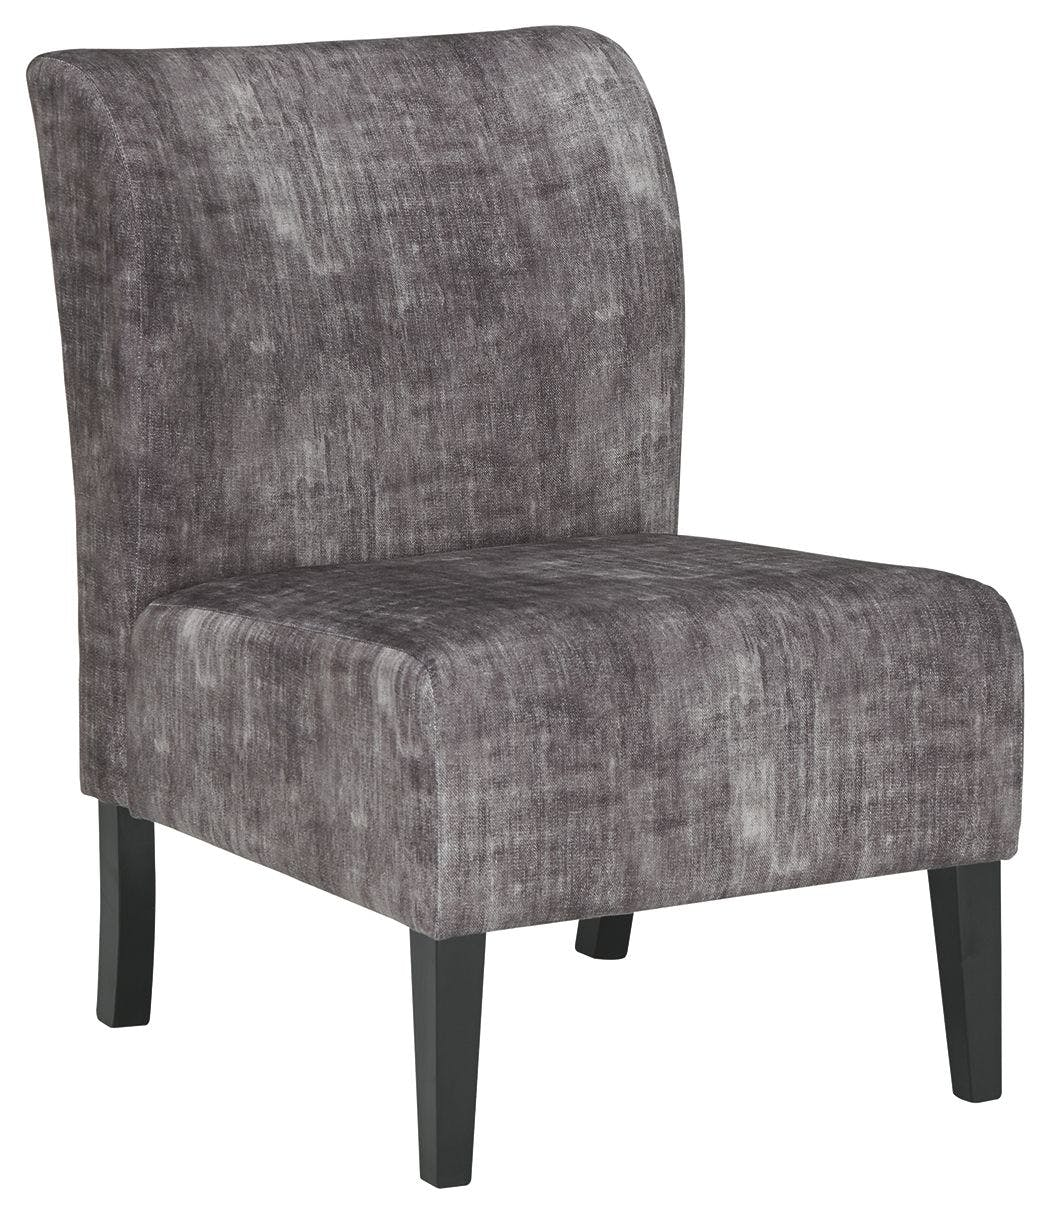 Signature Design By Ashley Living Room Triptis Accent Chair